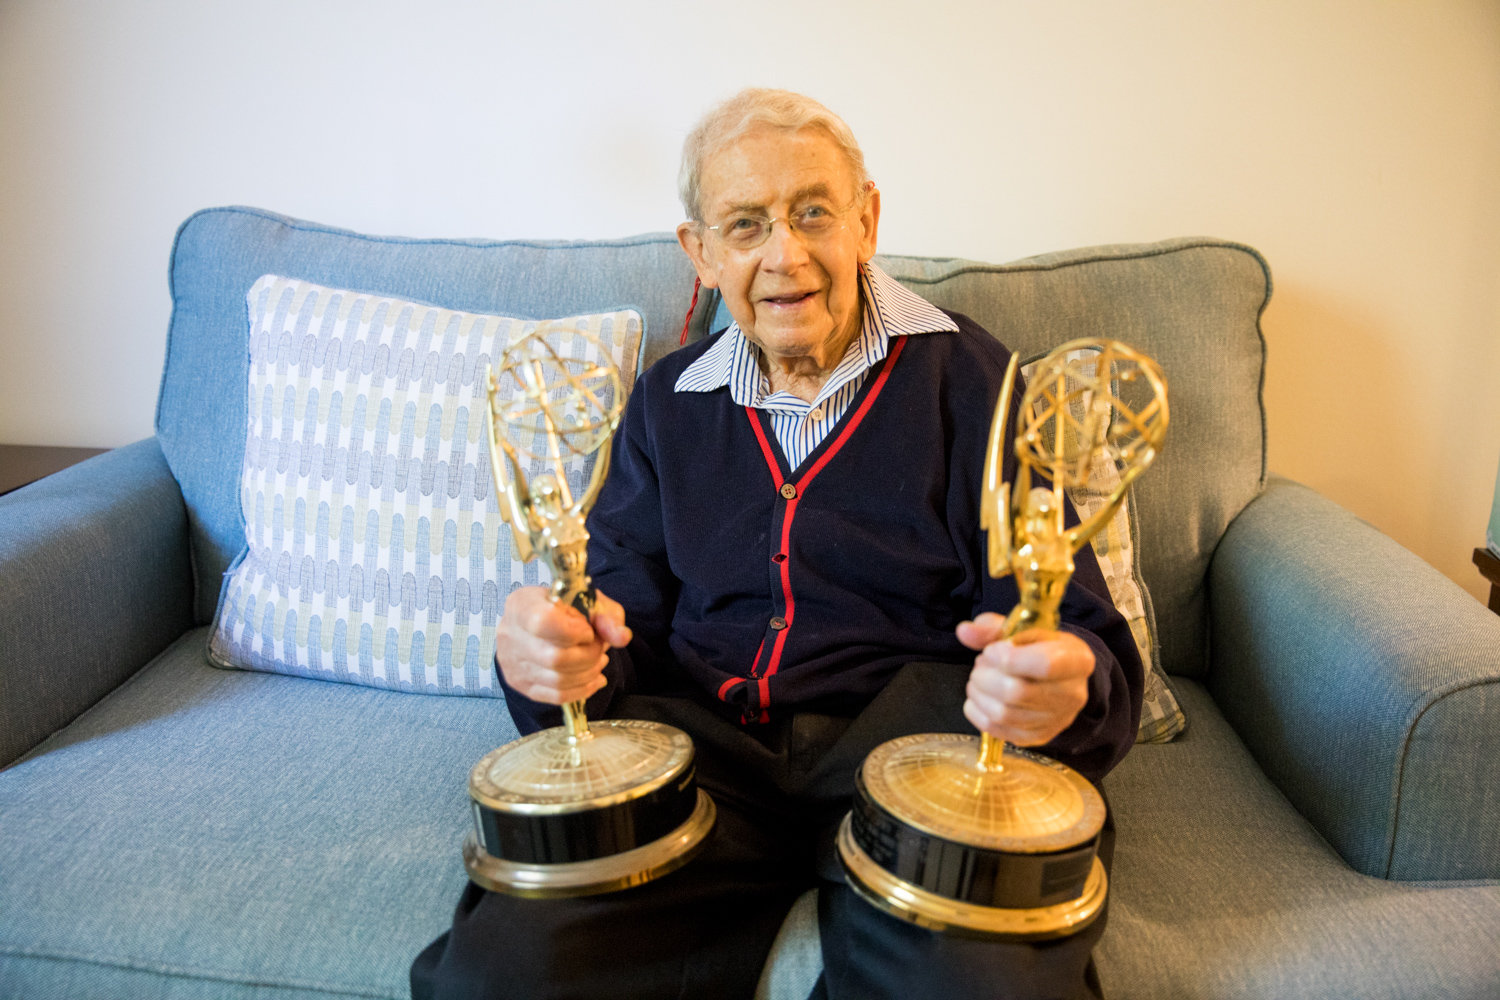 Harry Miller could not have anticipated winning Emmys for his scenic design work in soap operas, but he won back-to-back honors in 1984 and 1985.